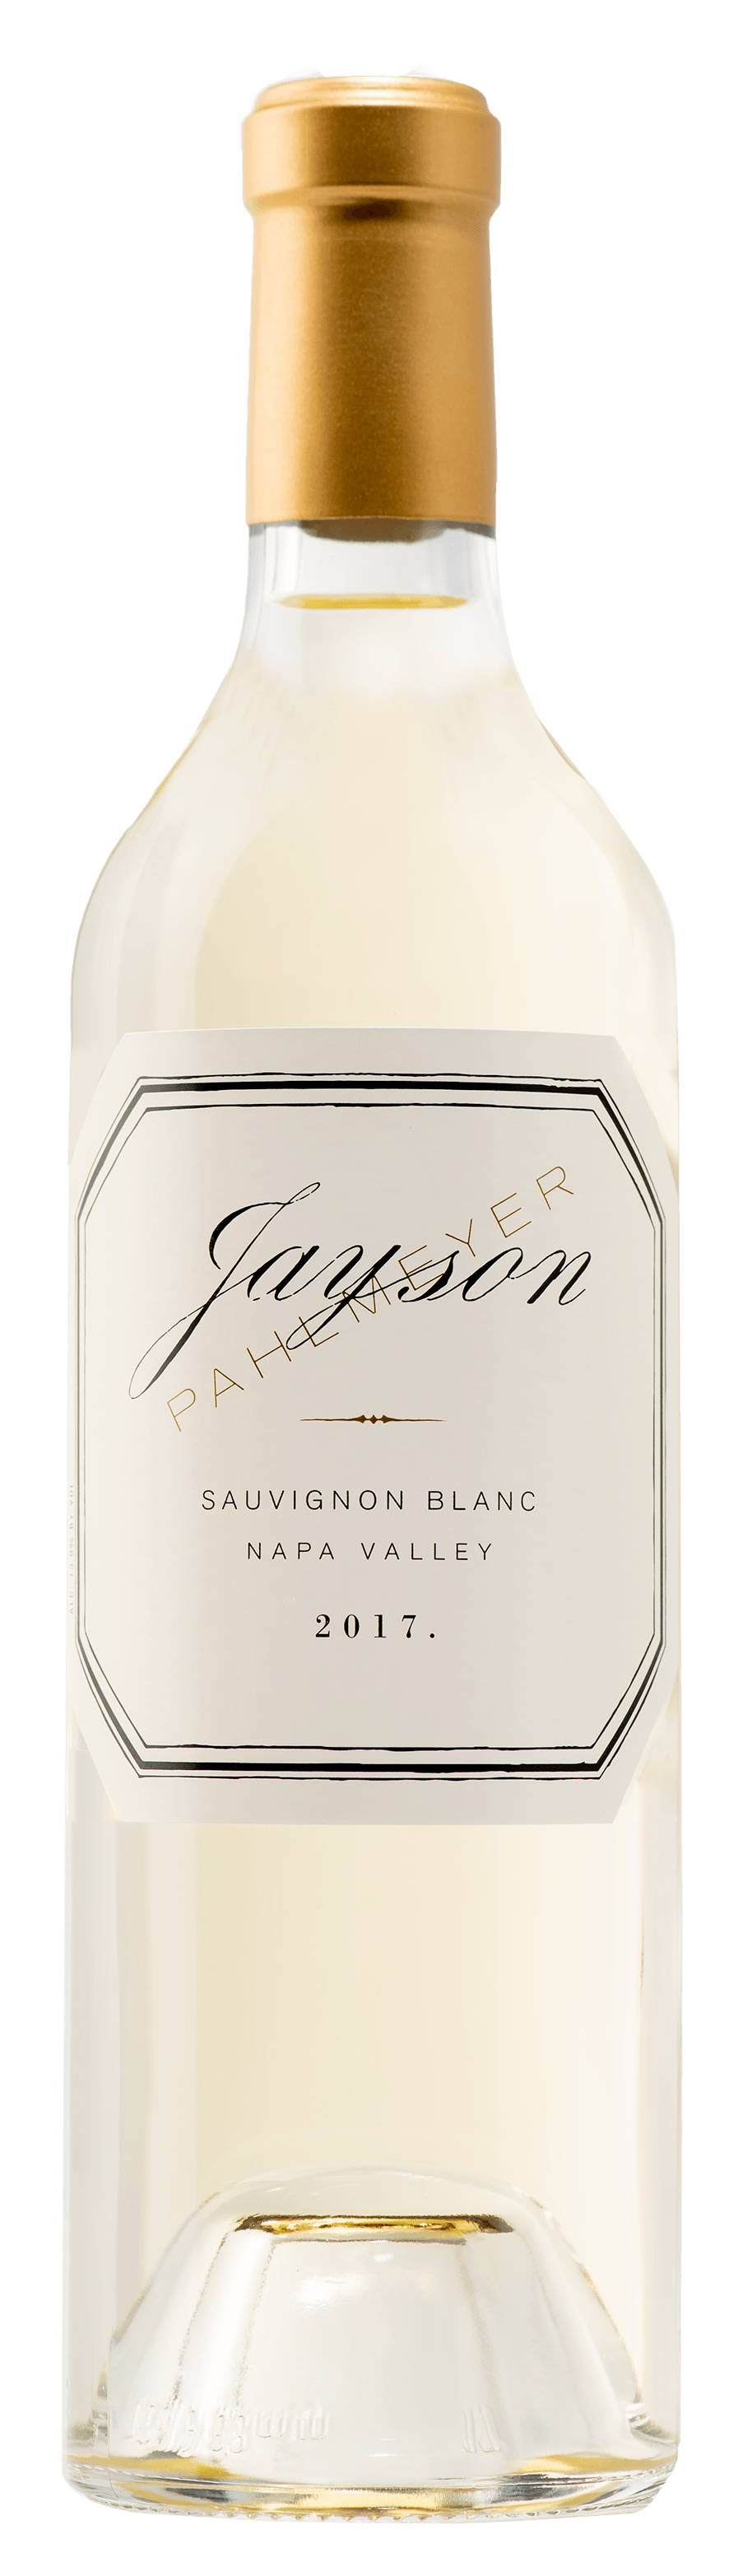 Wine, etc.: For summer wines, you can't go wrong with Sauvignon Blanc